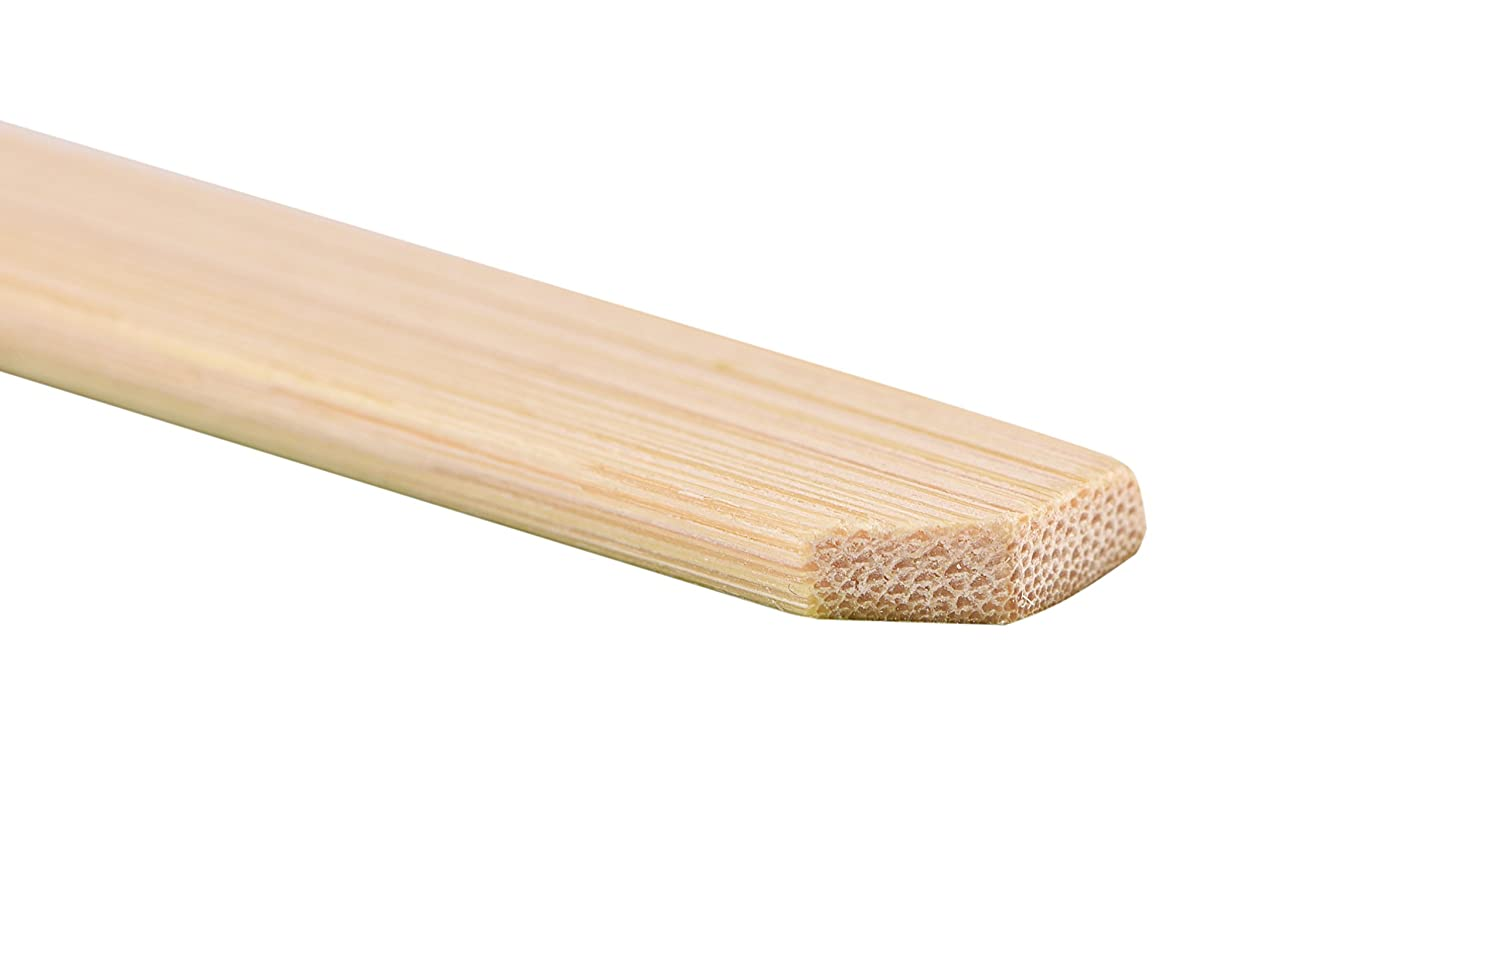 Ahyapiner 8 Inch Natural Bamboo Skewers 100 Pcs BBQ Skewers Grill Party Sandwich Cocktail Paddle Sticks